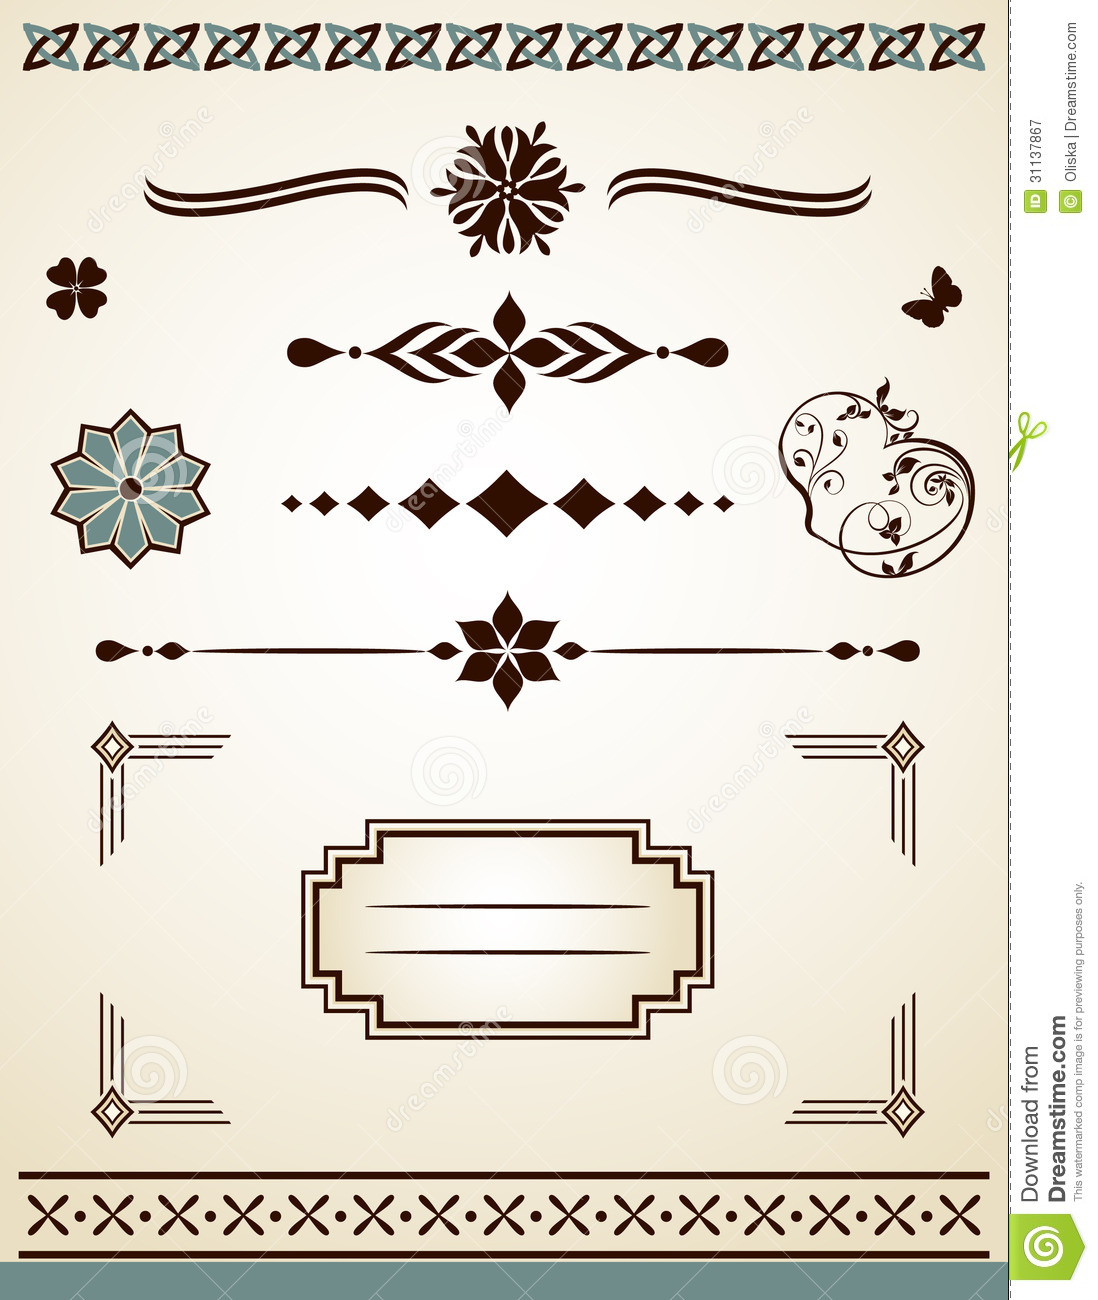 Page Or Text Borders, Frame, Corner And Divider Stock Vector ...